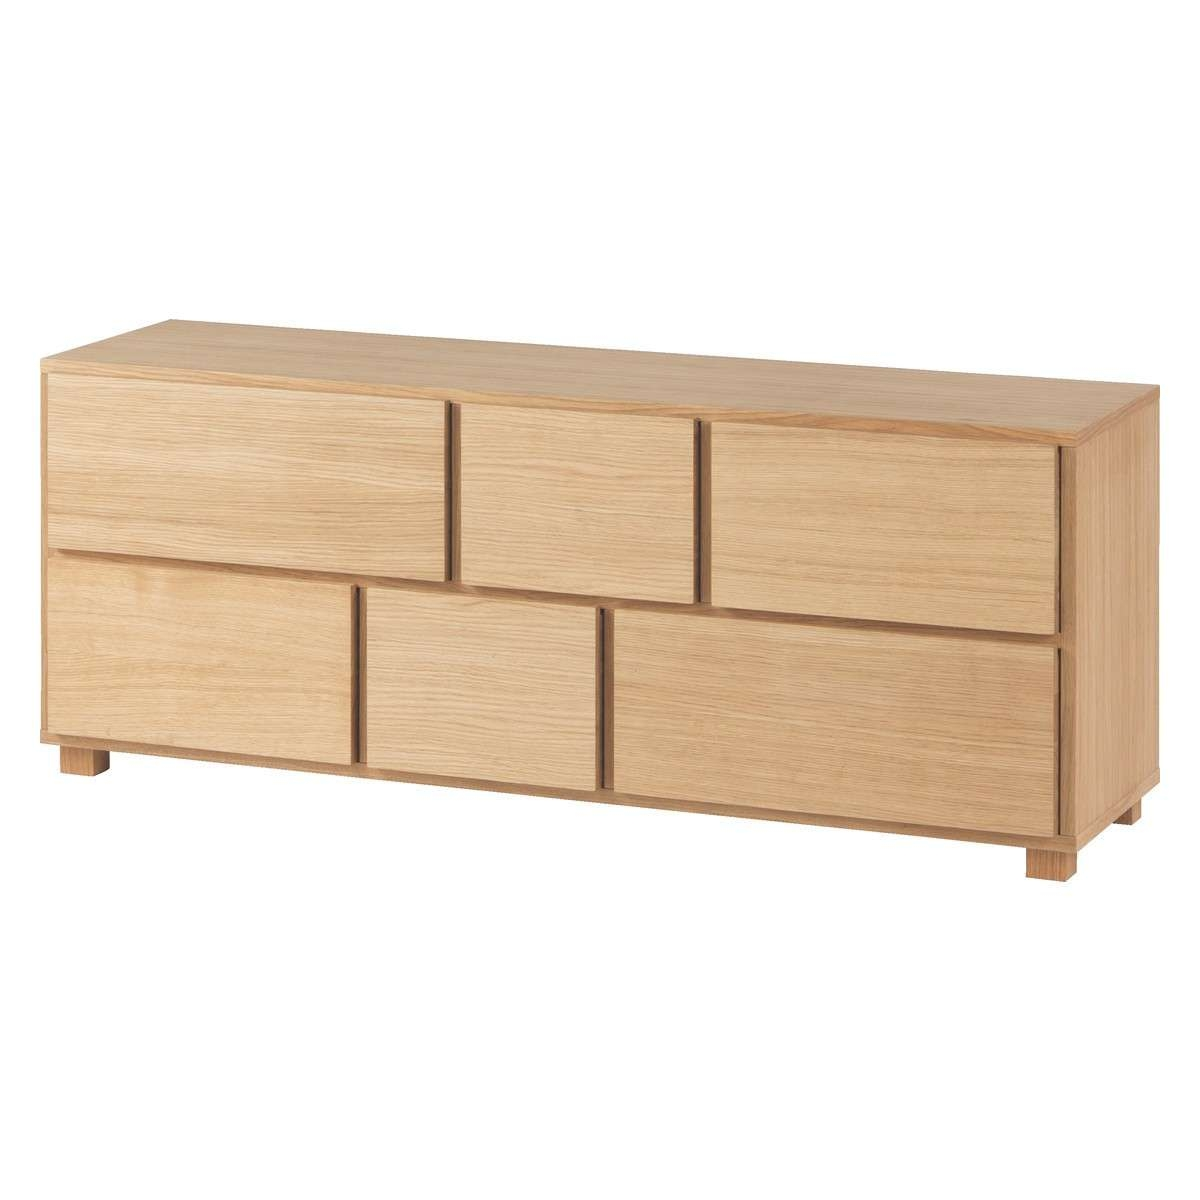 Hana Ii Oiled Oak 6 Drawer Low Wide Chest | Buy Now At Habitat Uk With Low Wide Sideboards (View 11 of 20)